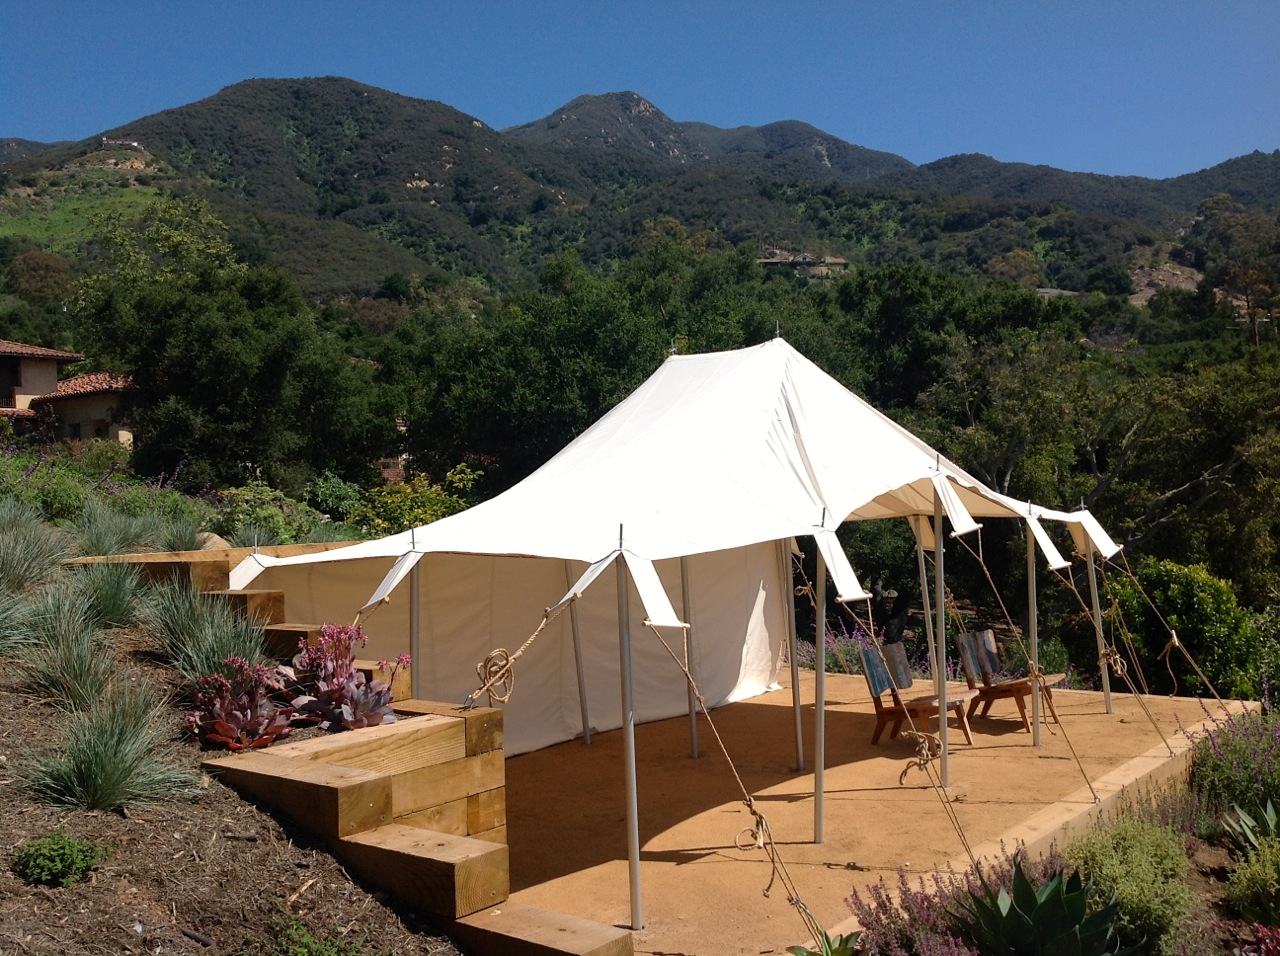 Armbruster Tent Maker: Bedouin Tent from Armbruster